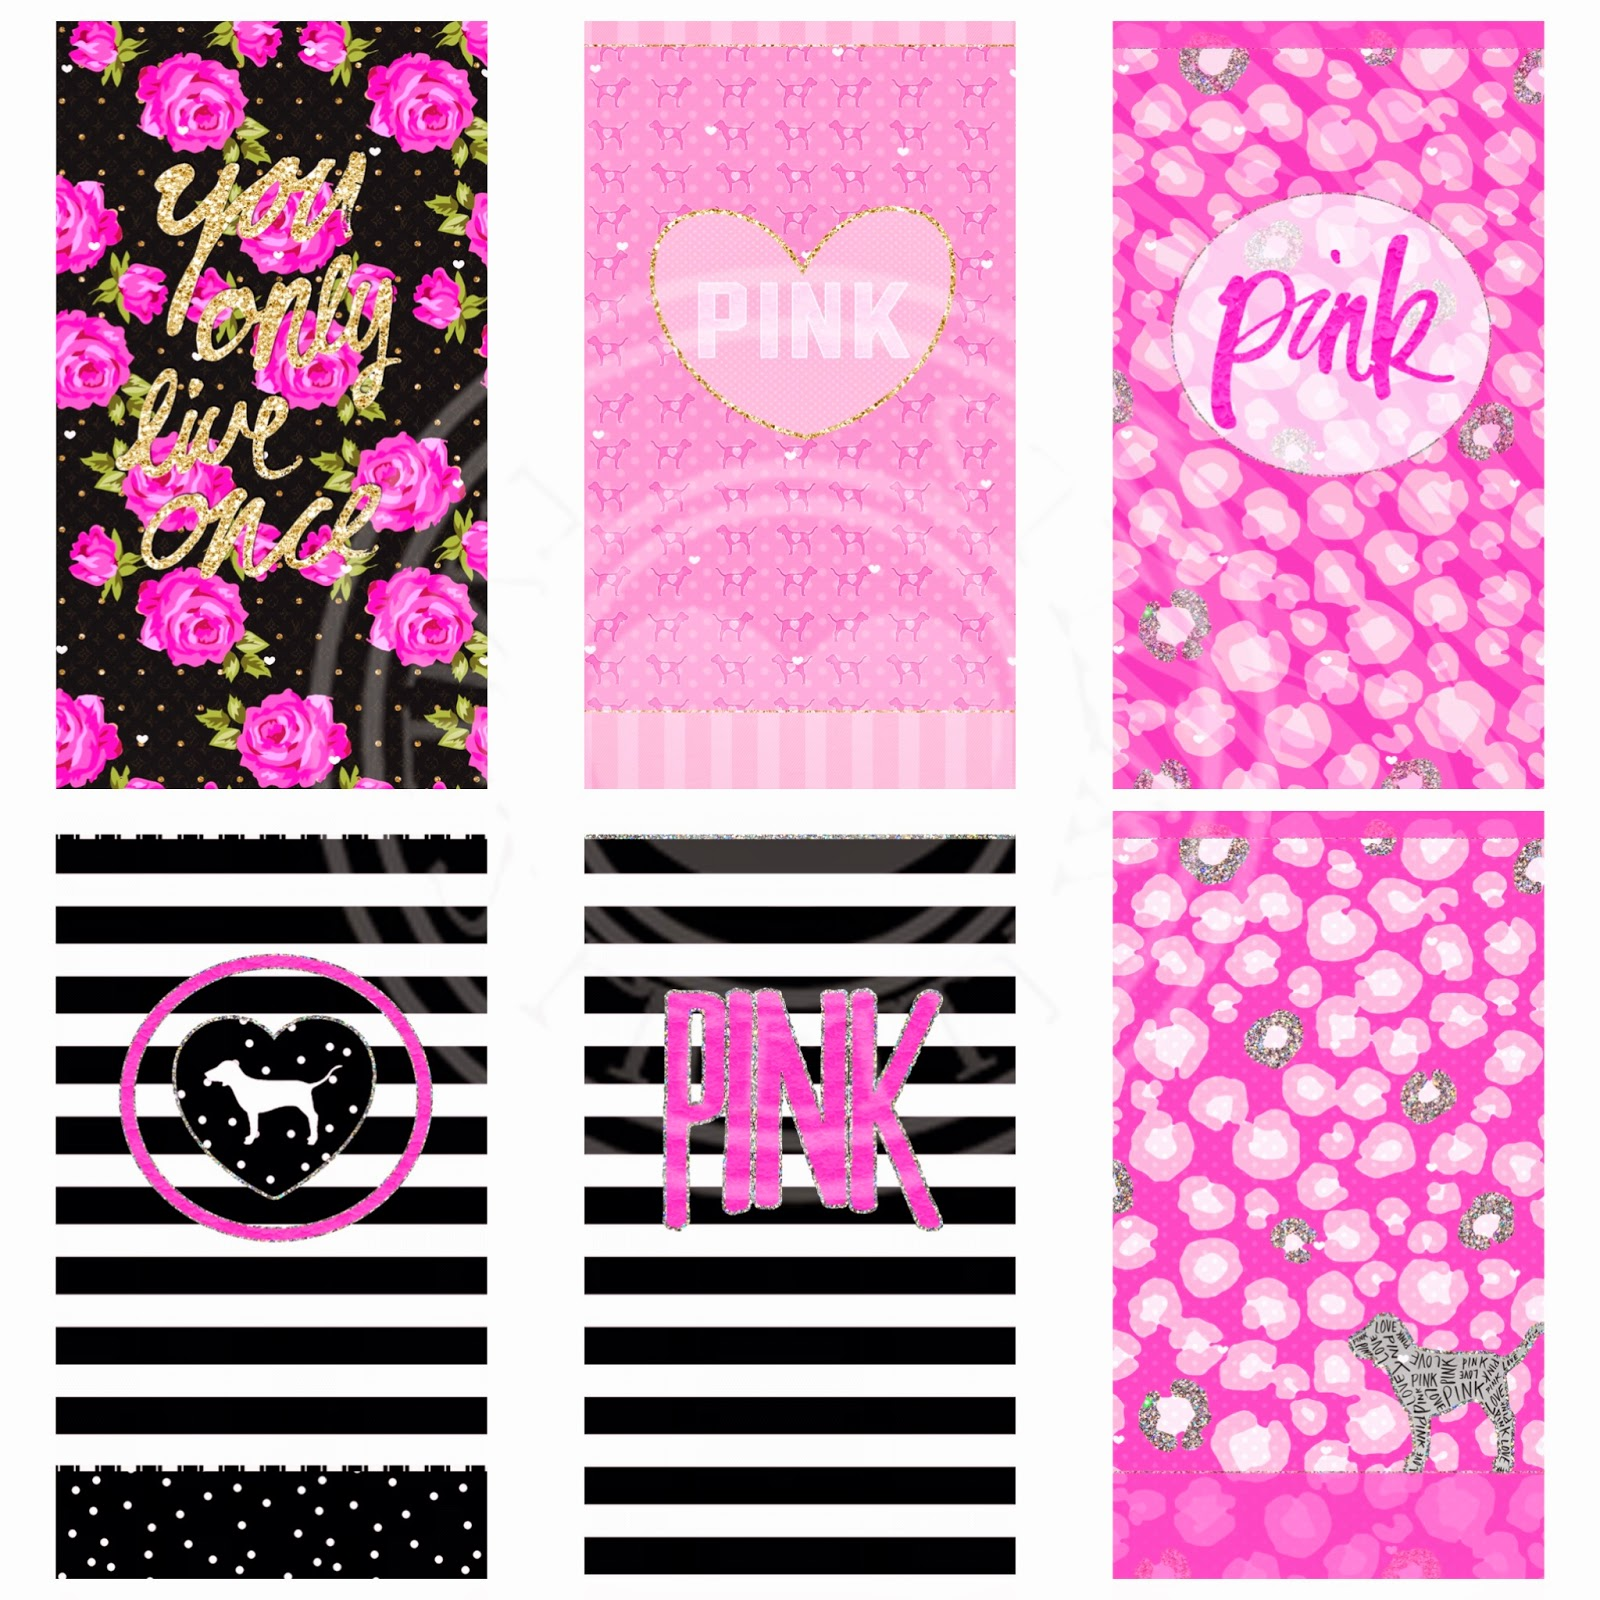 PINK NATION 15 PIECE WALLPAPER ... g topsy.one